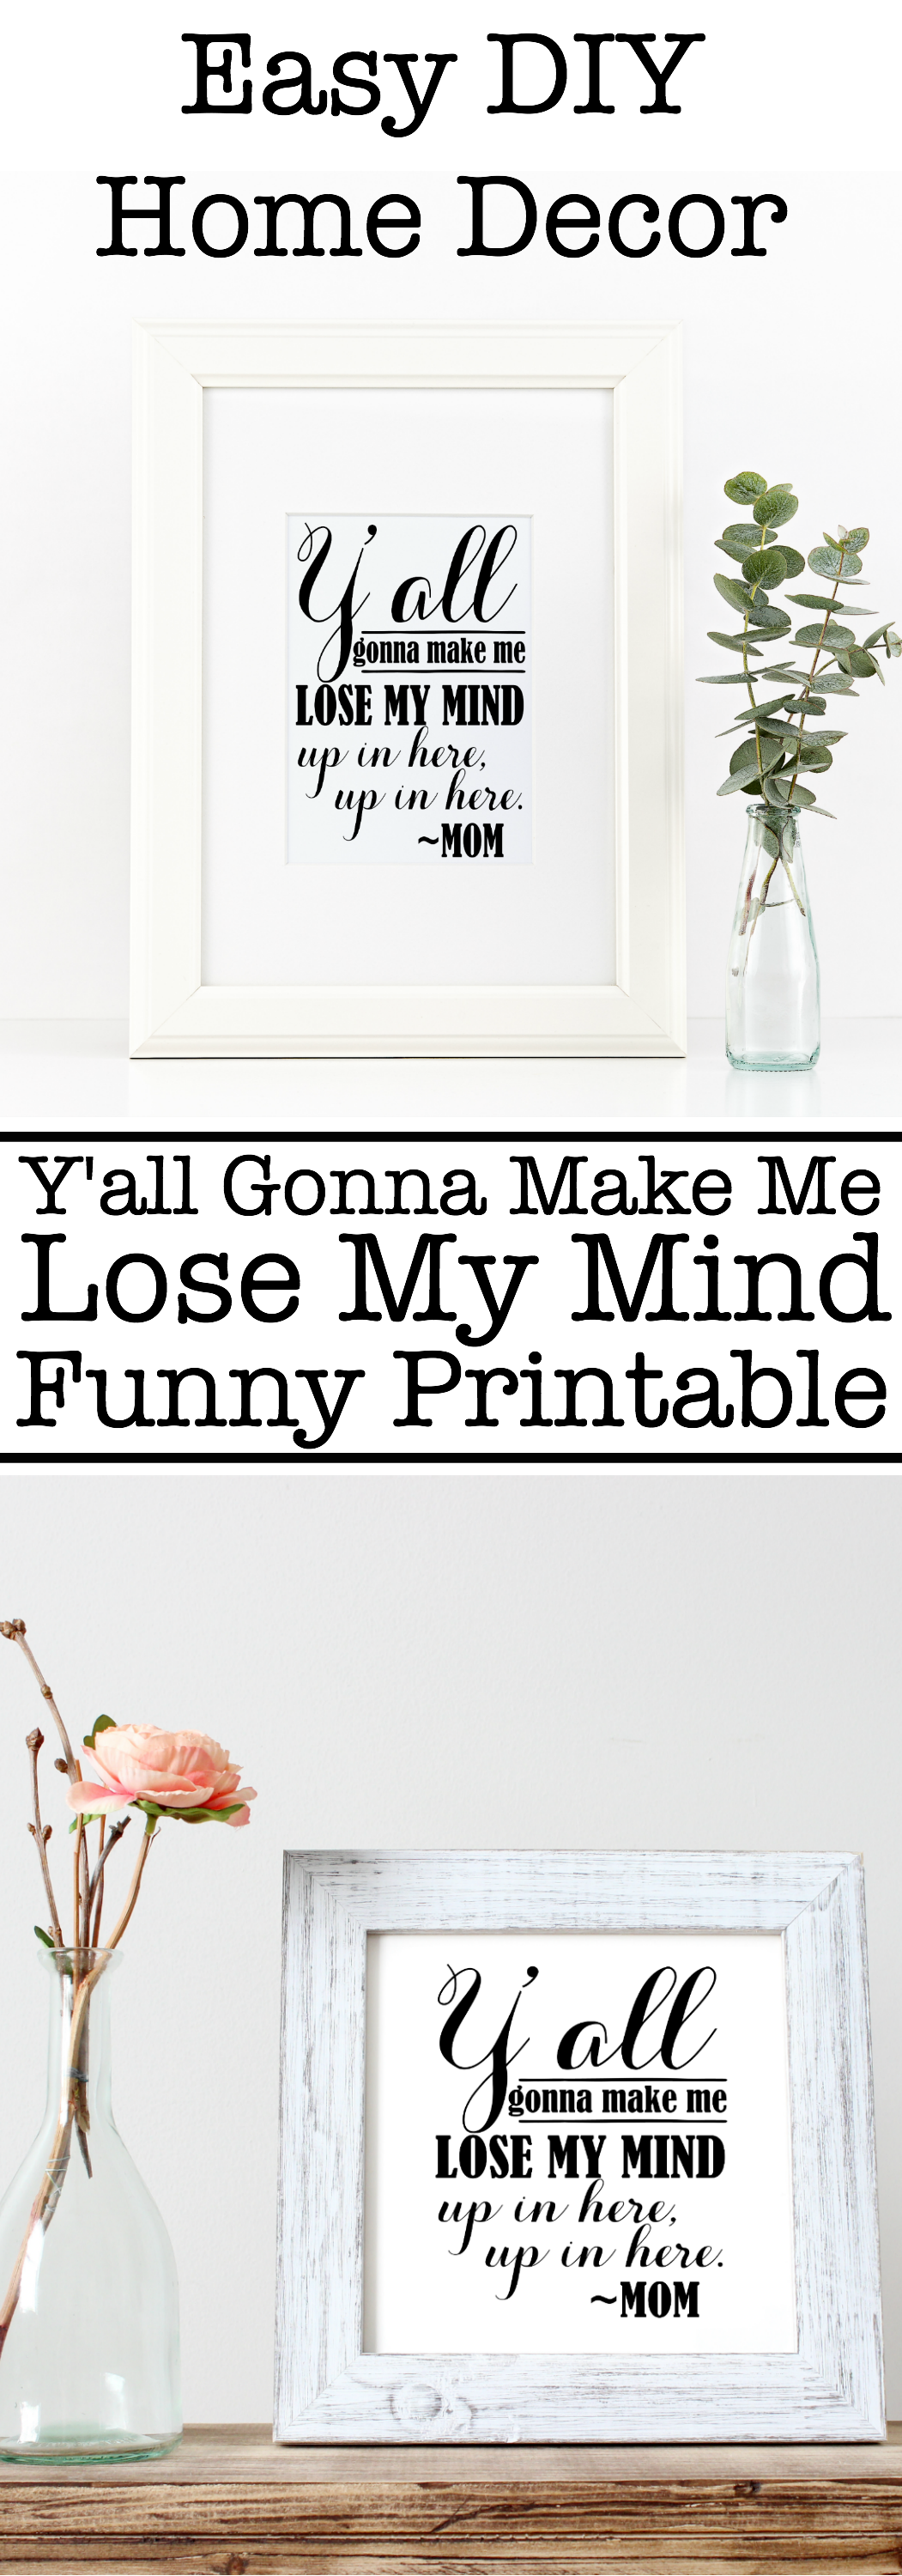 This parenting gig is hard work and sometimes not very funny. But this funny Y'all Gonna Make Me Lose My Mind printable might bring some laughs.